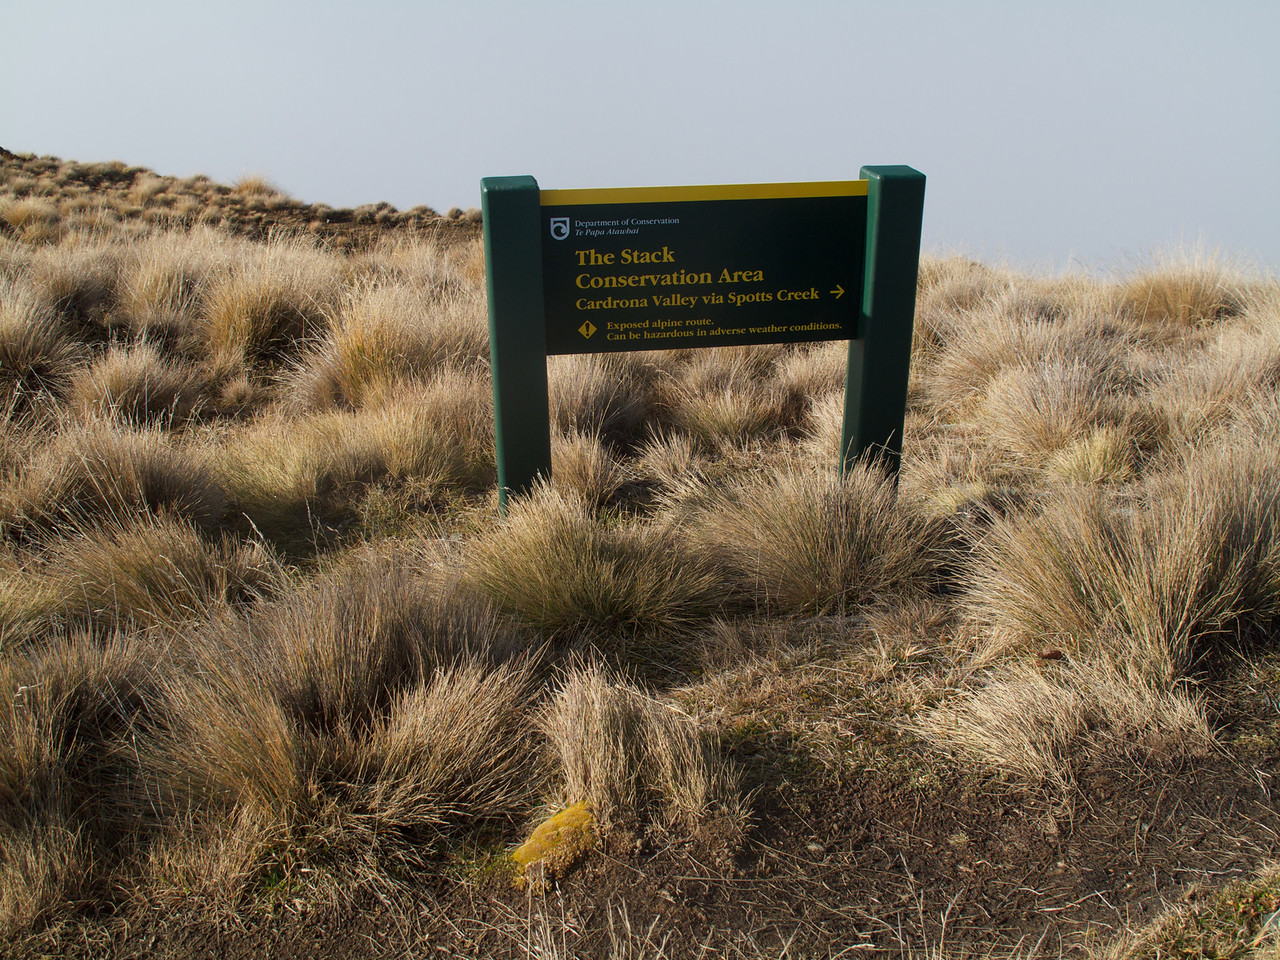 The Stack Conservation Area near the Summit of Roys Peak